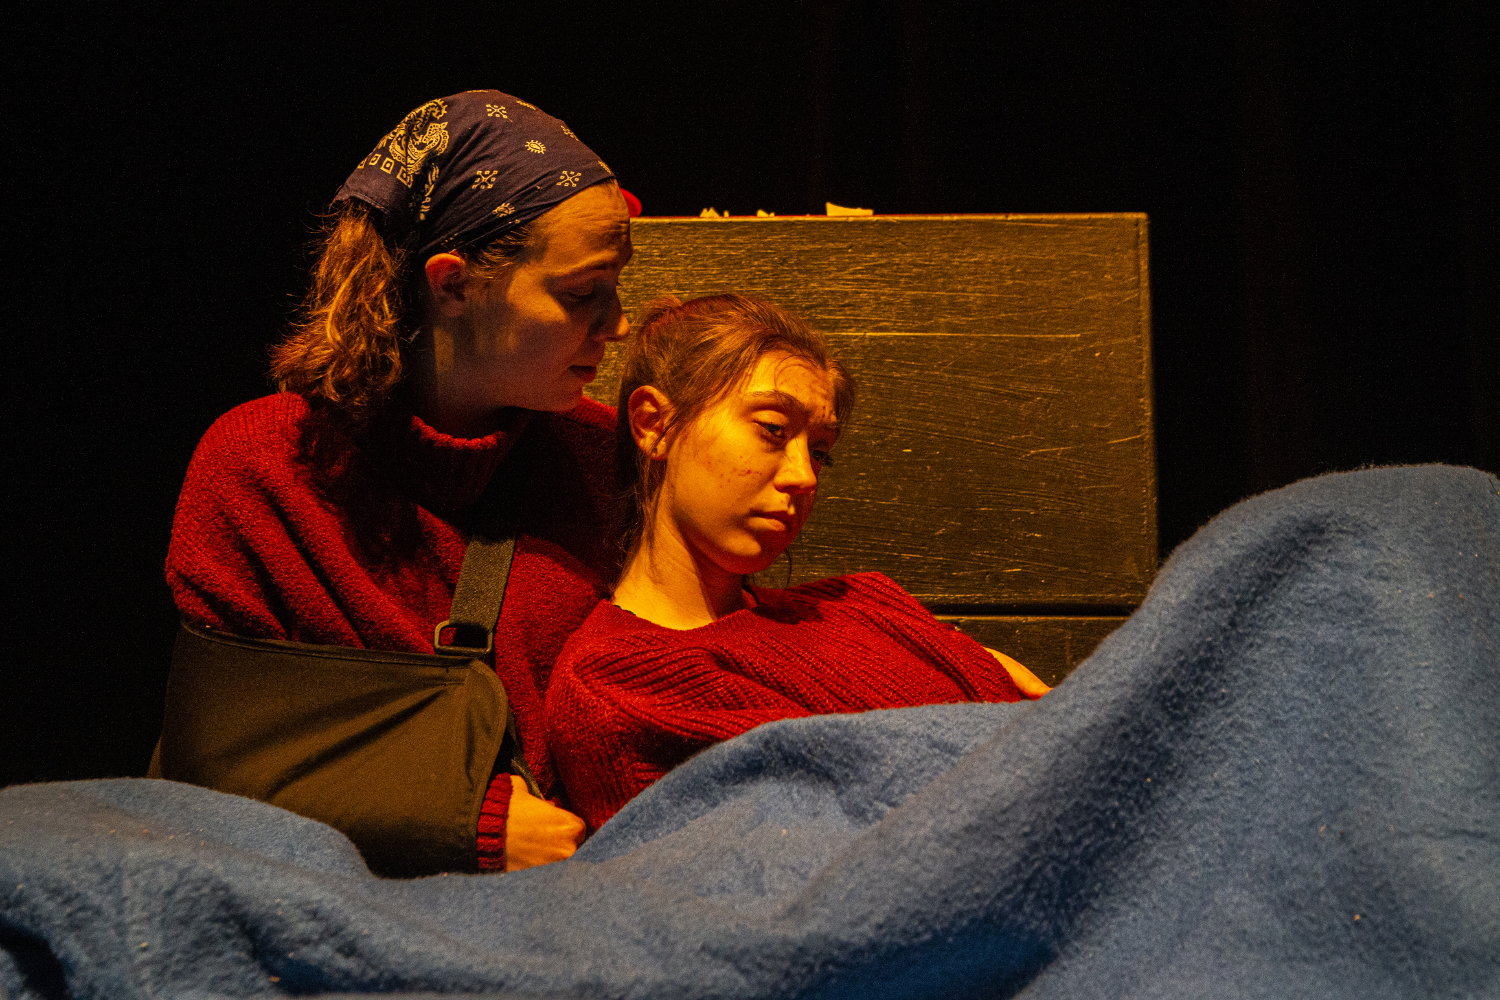 Actors Sophia Kilburg and Cailin Hall perform in Onions as part of the Ten Minute Play Festival in the University of Iowa Theatre Building on Wednesday, February 12th, 2020. The Ten Minute Play Festival showcases the work of seven ten minute long plays written and produced by University of Iowa theatre students.